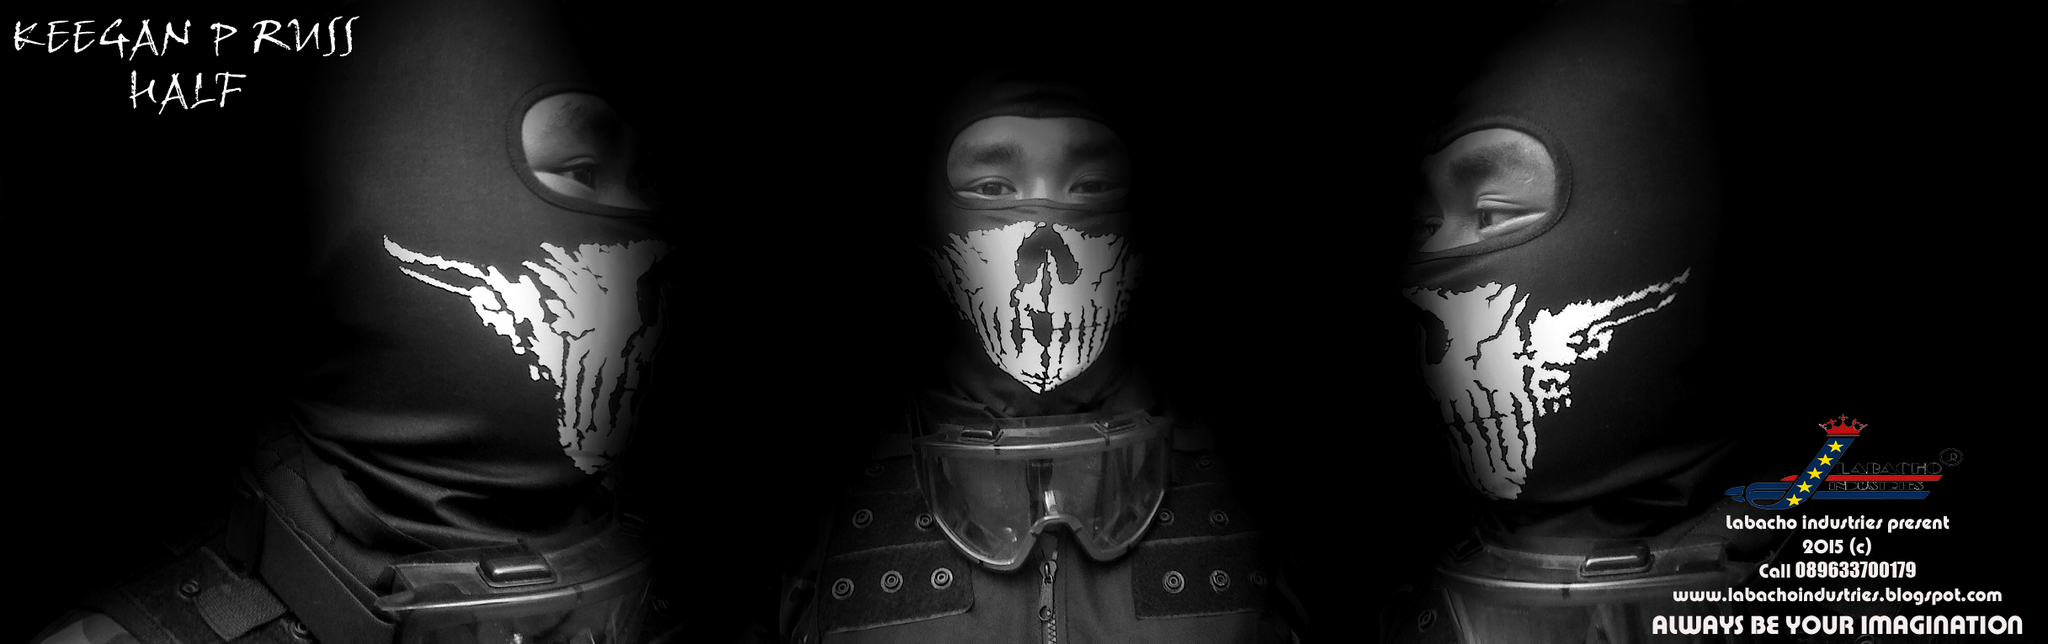 Jual BALACLAVA CALL OF DUTY GHOST KEEGAN P RUSS HALF - NAZZA ...